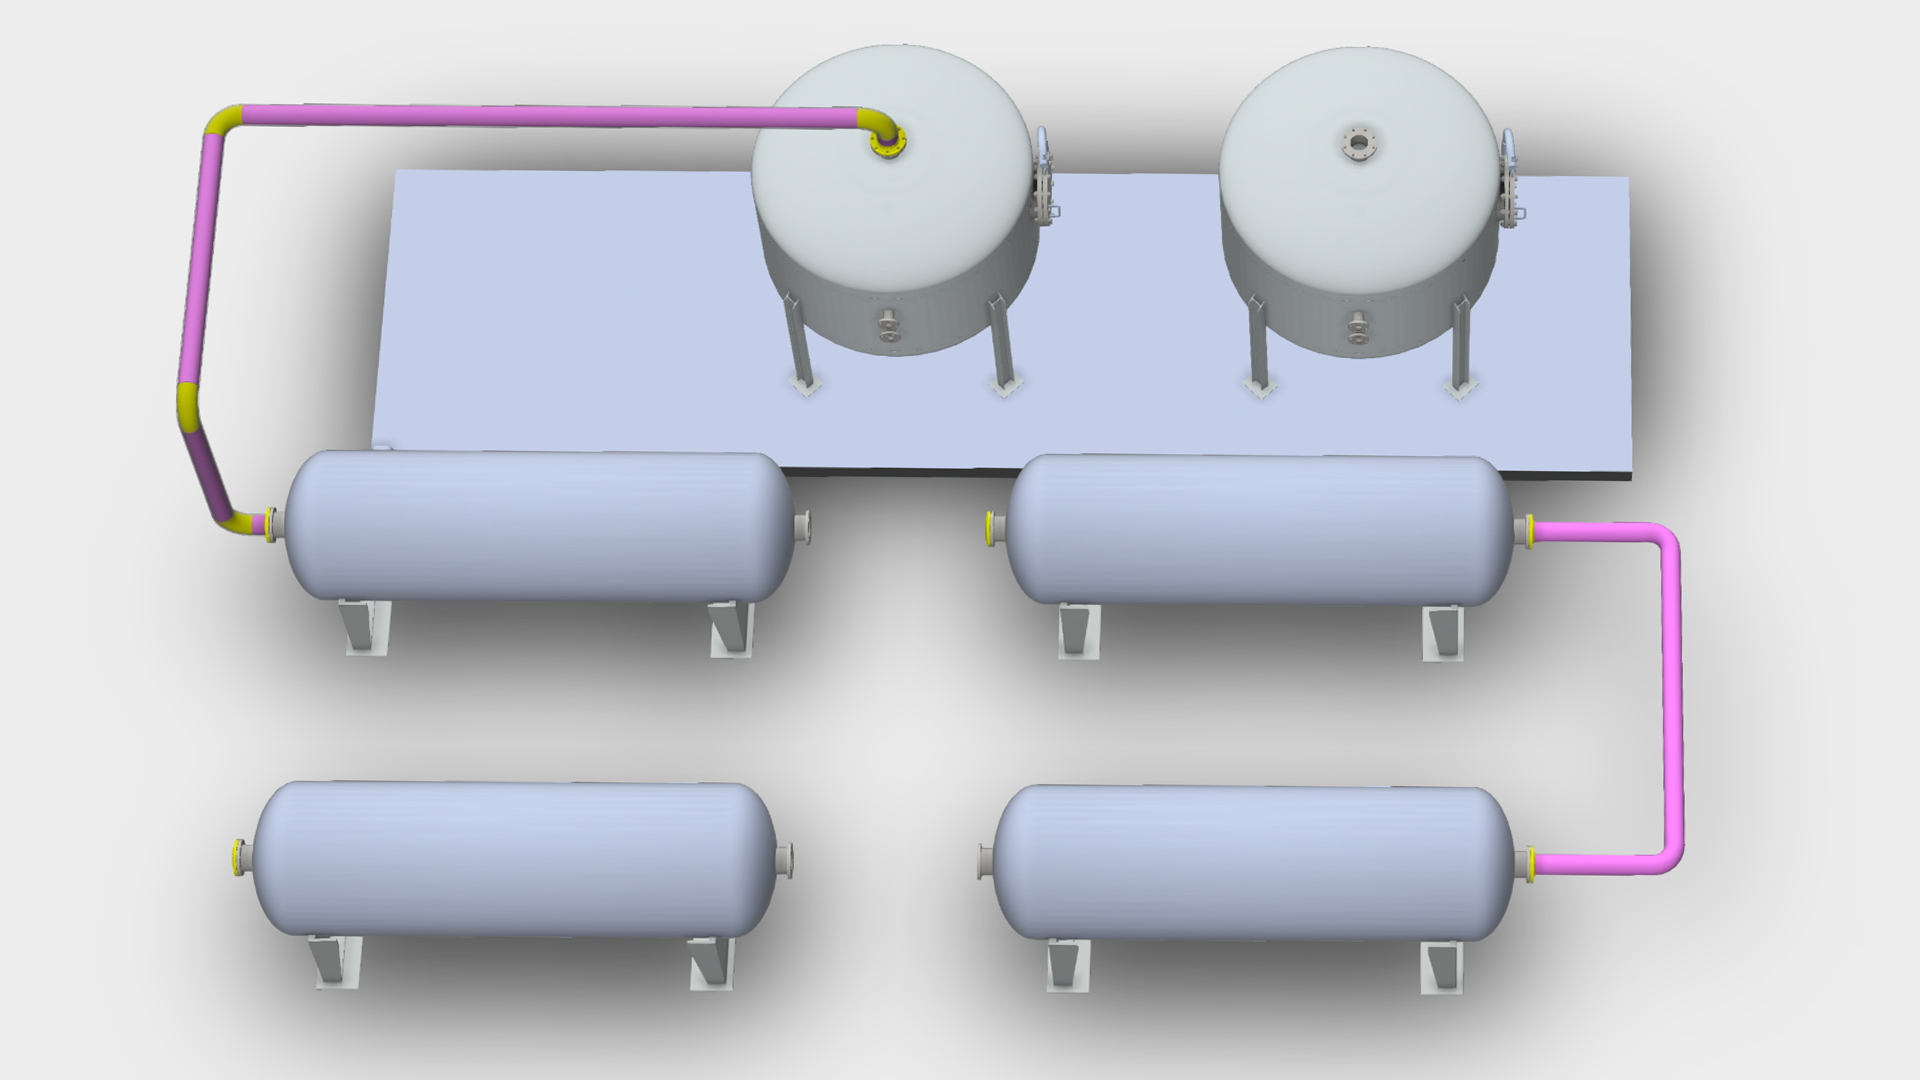 Solidworks Piping And Routing